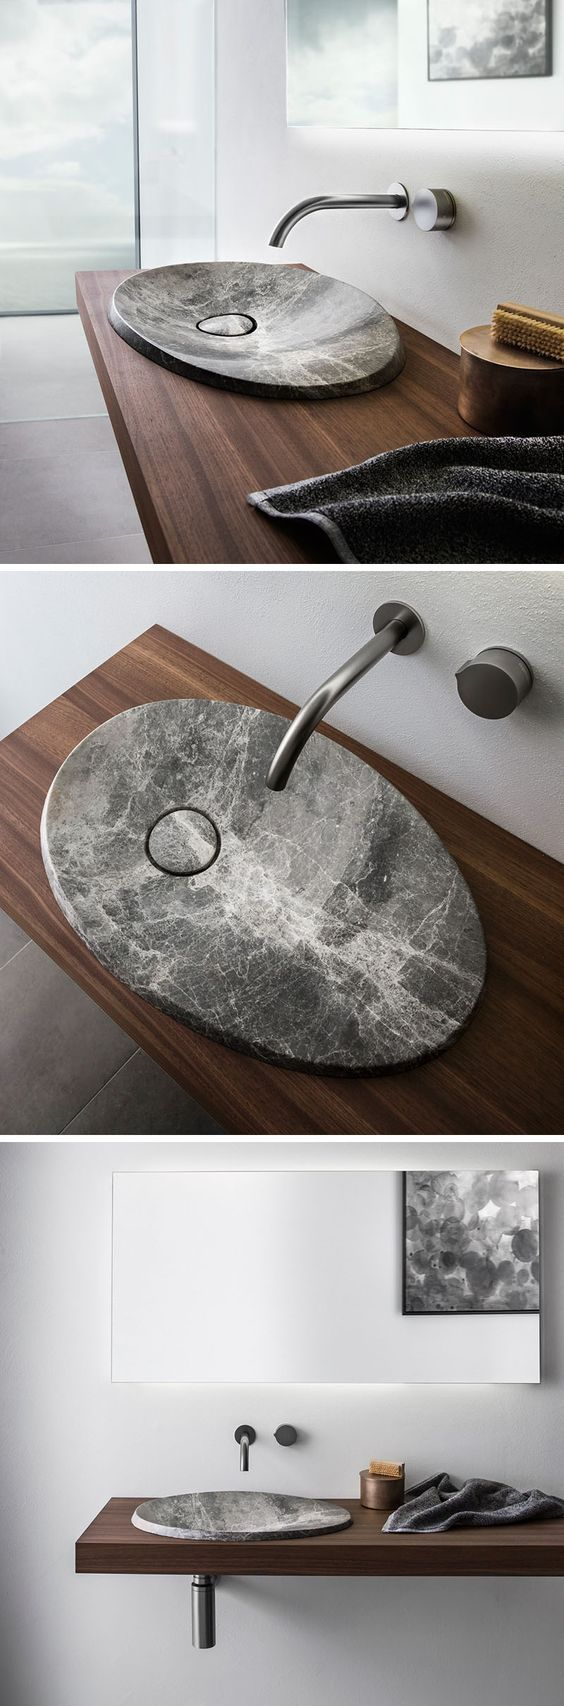 best  modern bathroom sink ideas on pinterest  modern bathroom  - the design of this natural stone sink is inspired by the shape of cratersleft from a volcano modern bathroom